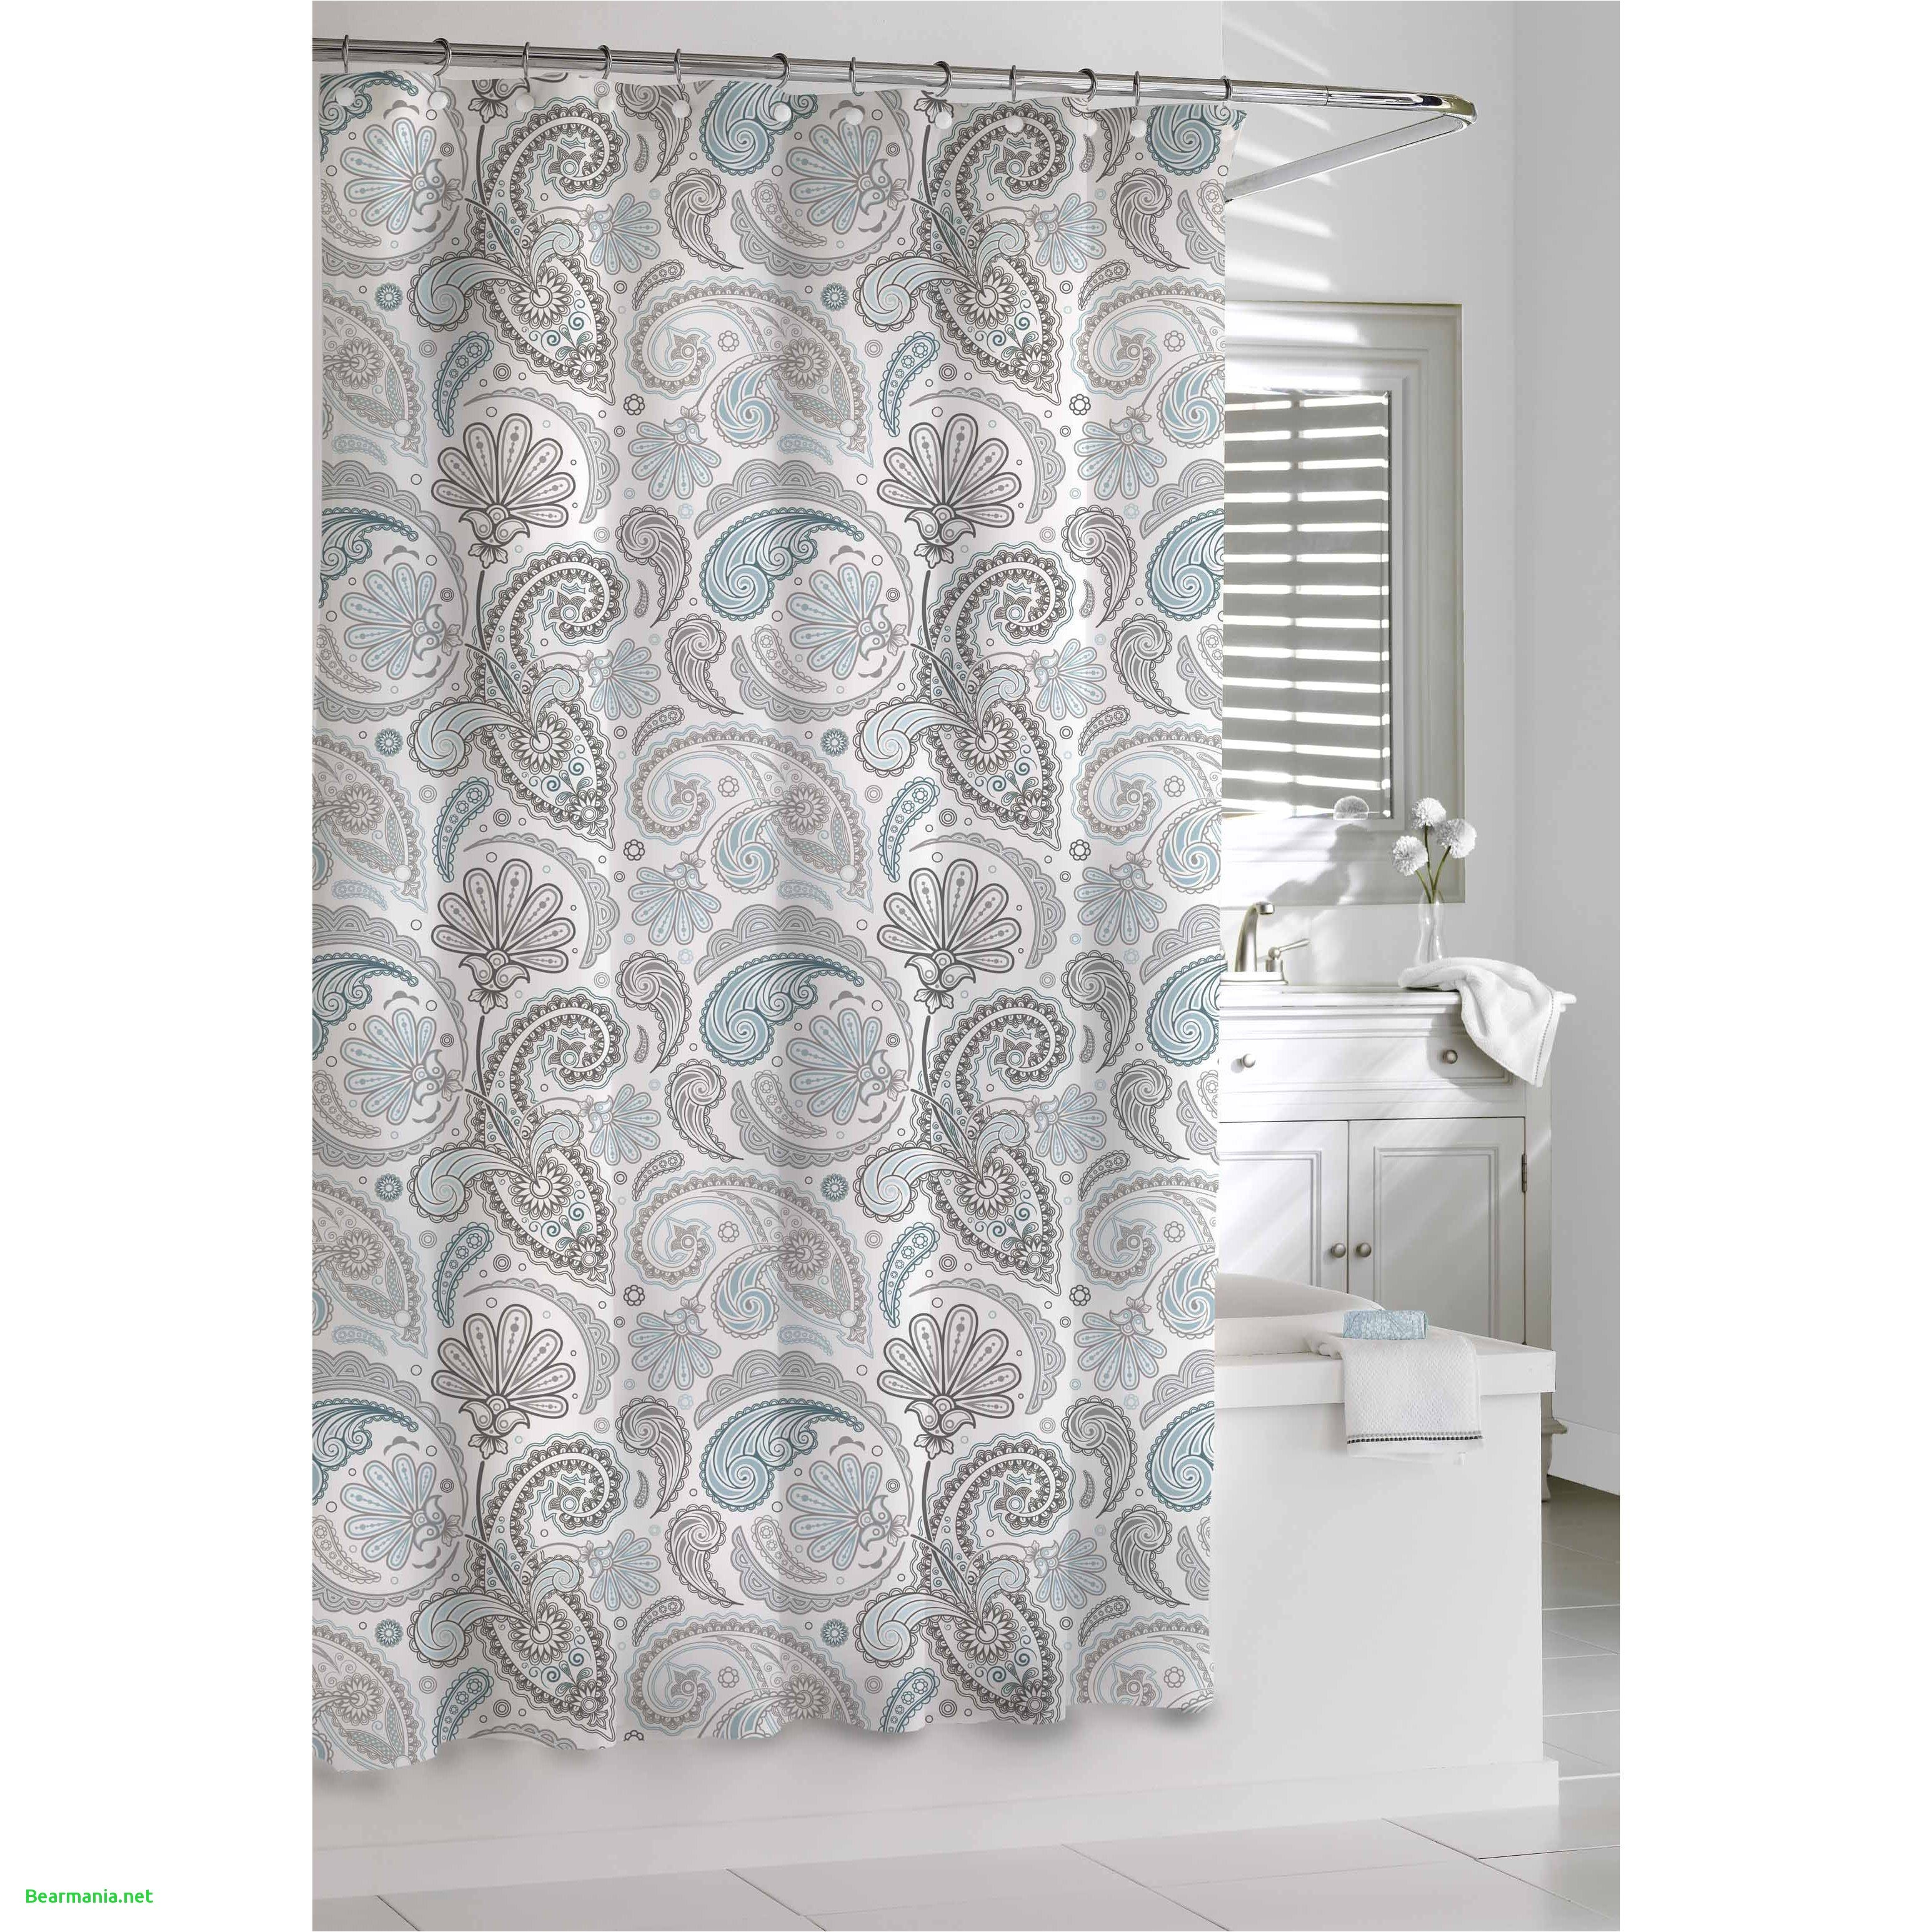 30 beautiful kohls shower curtains design ideas of texas shower curtain